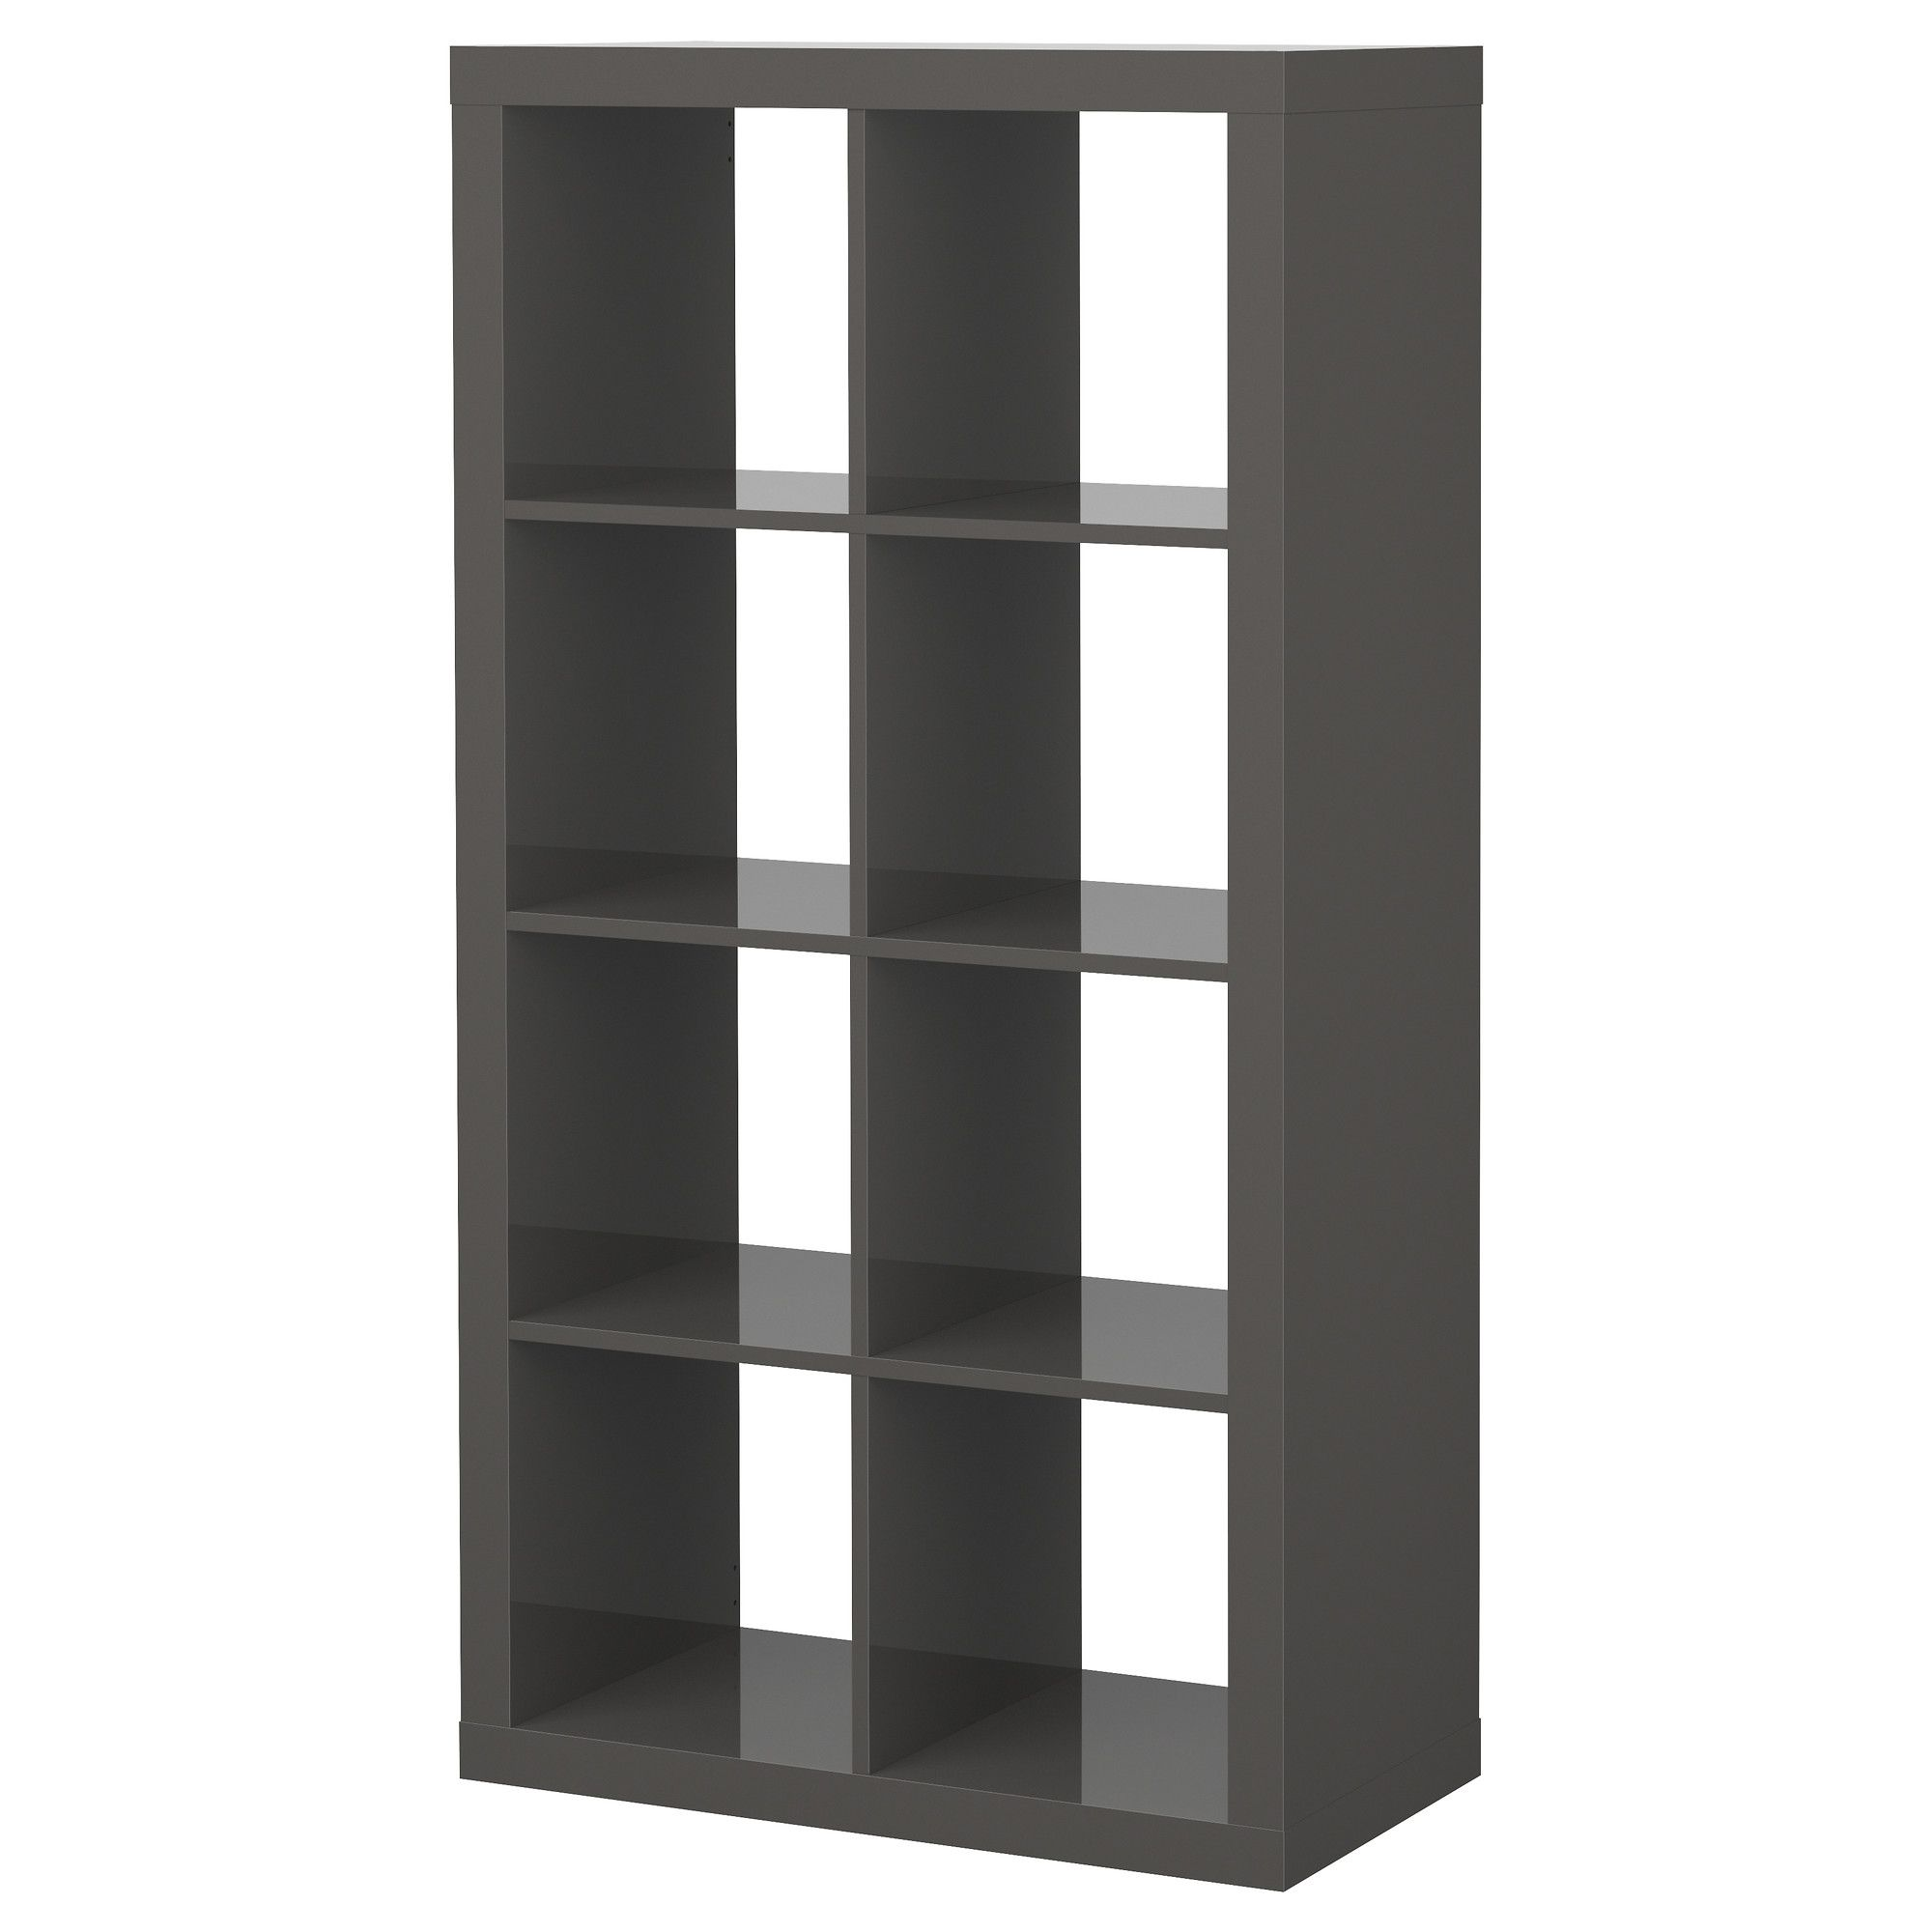 Regal Grau Expedit Regal Hochglanz Grau Ikea Home Ikea